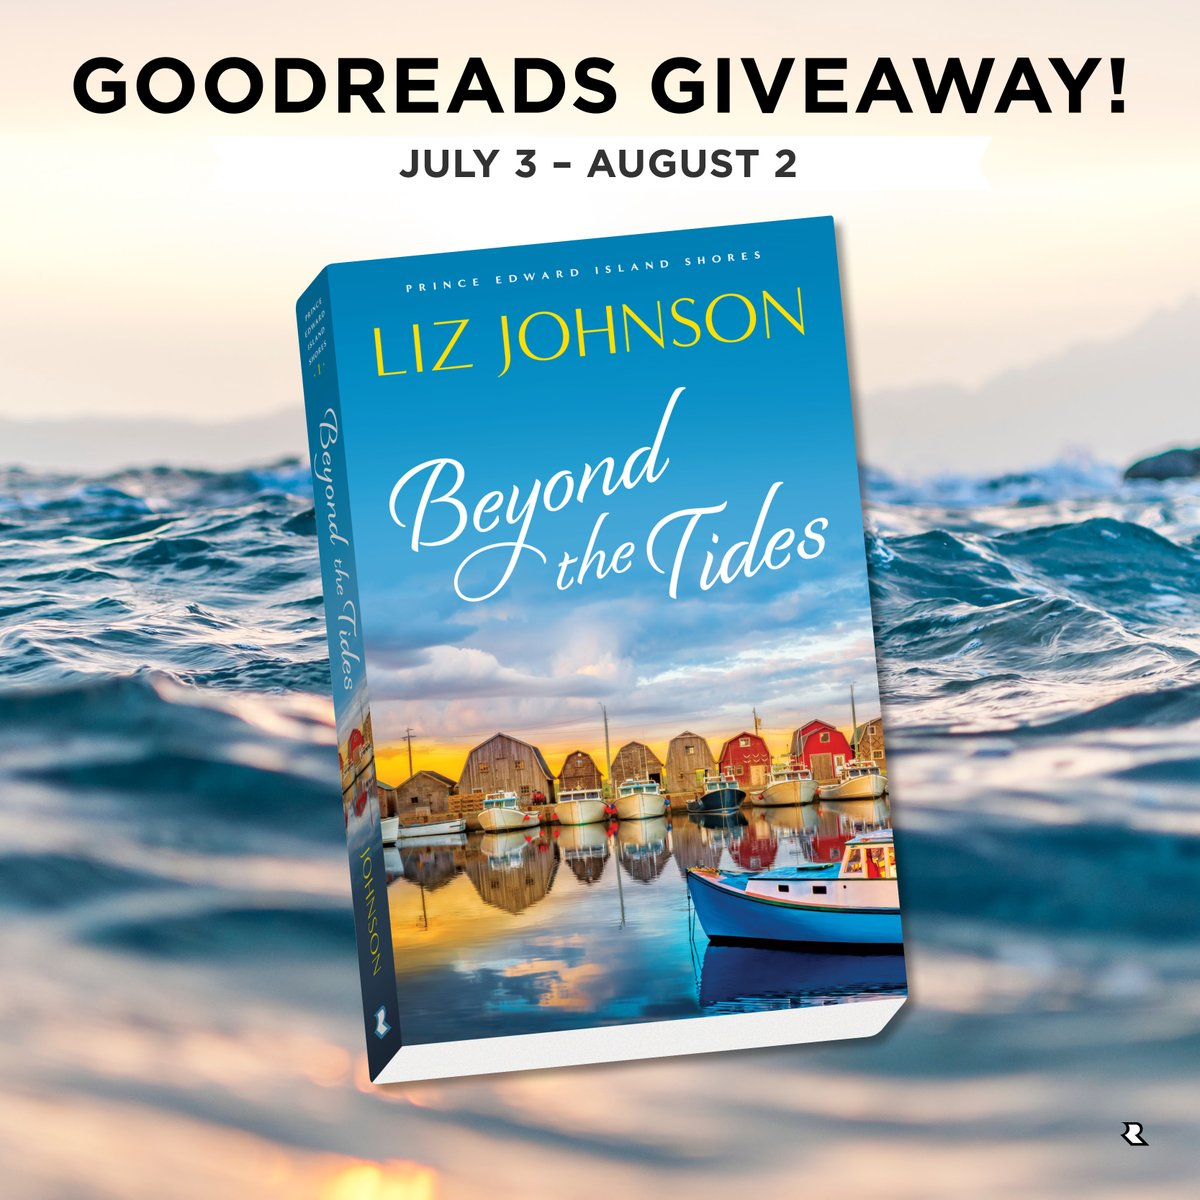 test Twitter Media - There's still time to enter for a chance to win Beyond the Tides! Enter at Goodreads now! #GoodreadsGiveaway  https://t.co/kyEFFEszsm https://t.co/bNvQEscOHU